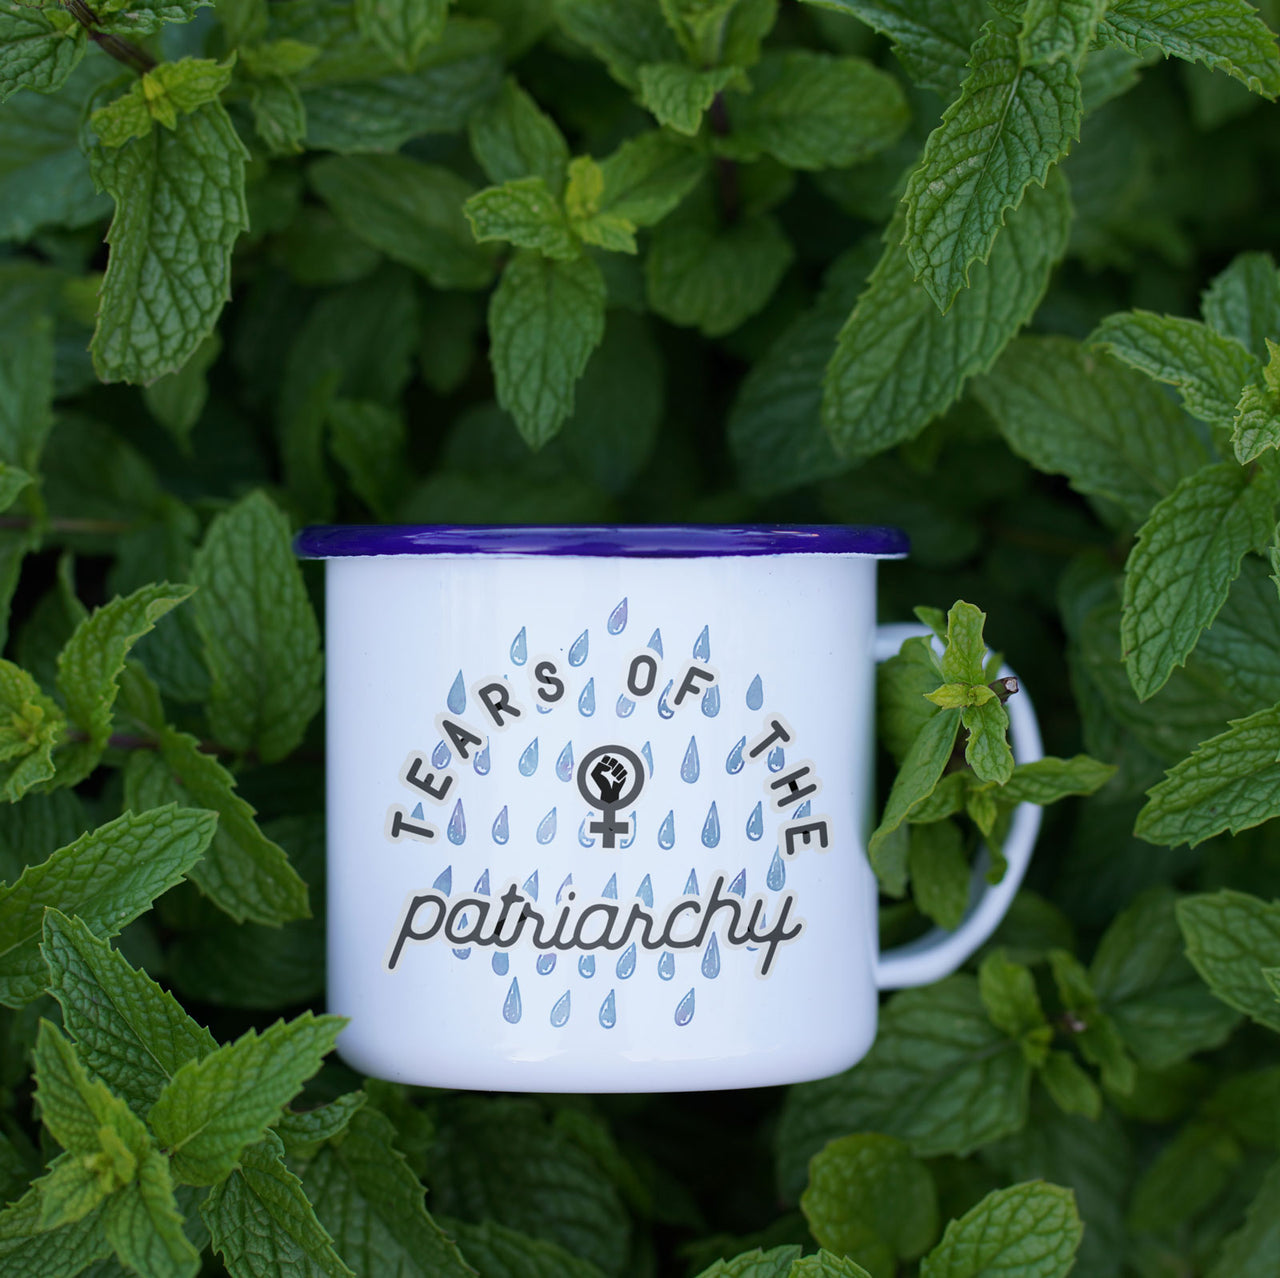 Tears of the Patriarchy - Feminist Camp Mug